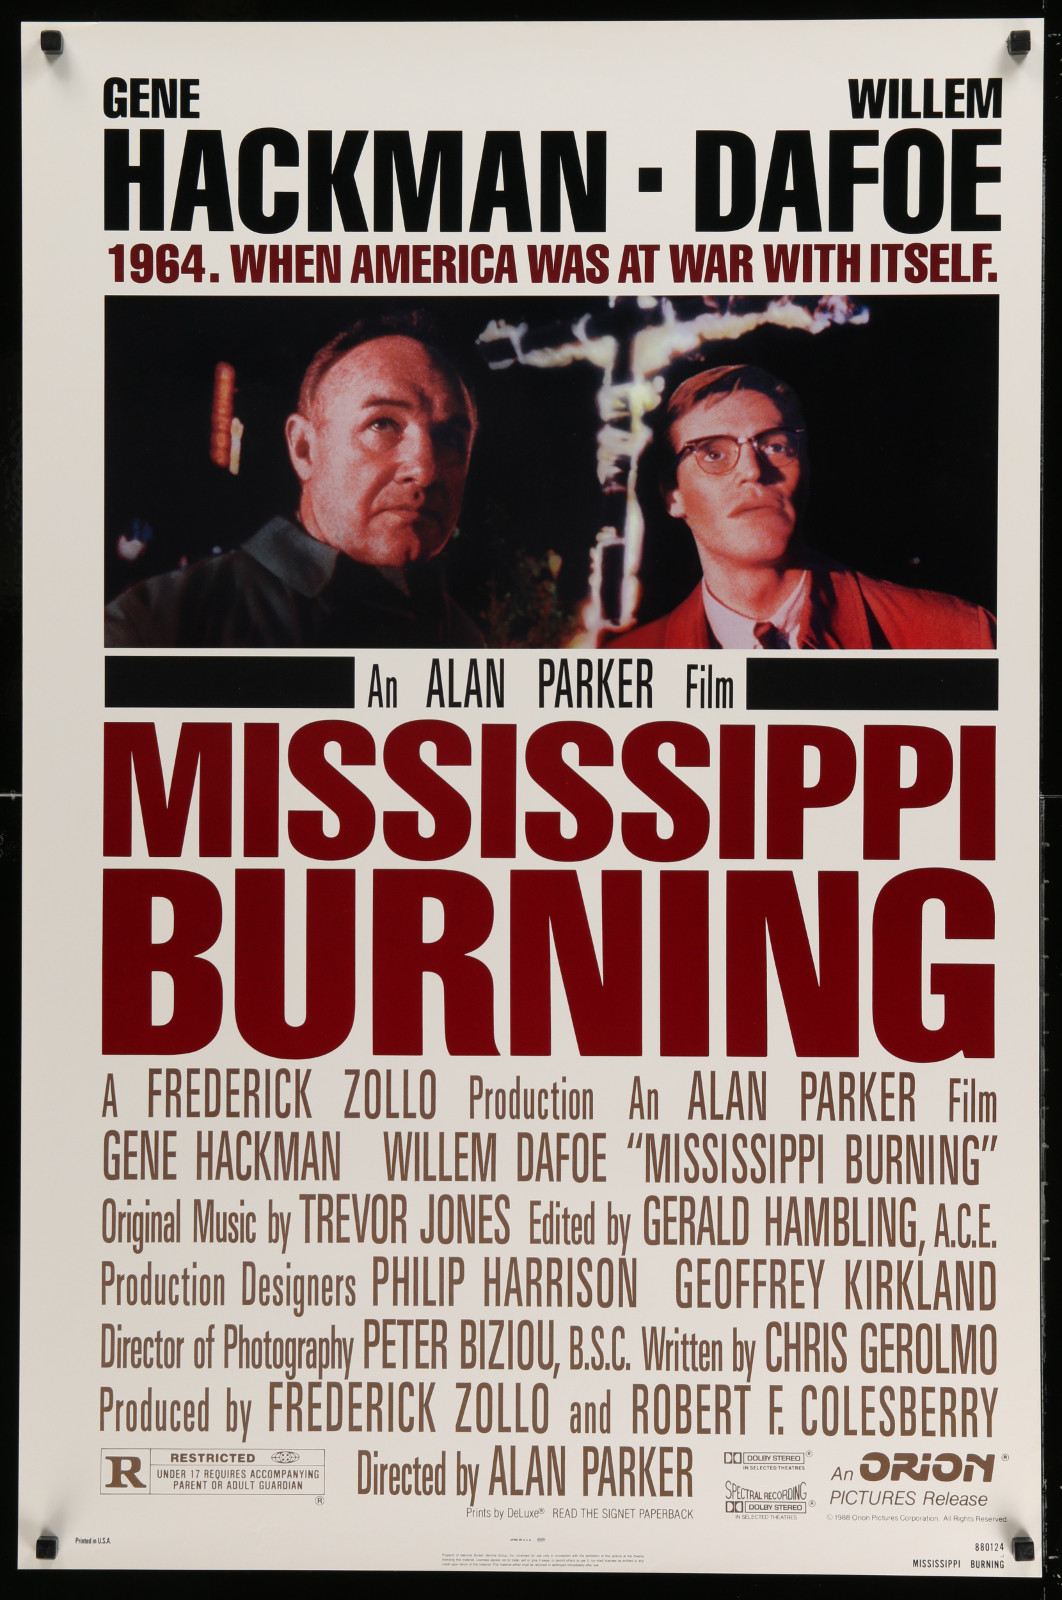 Mississippi Burning 2A414 A Part Of A Lot 20 Unfolded Double-Sided And Single-Sided One-Sheets '80S-90S Great Movie Images!